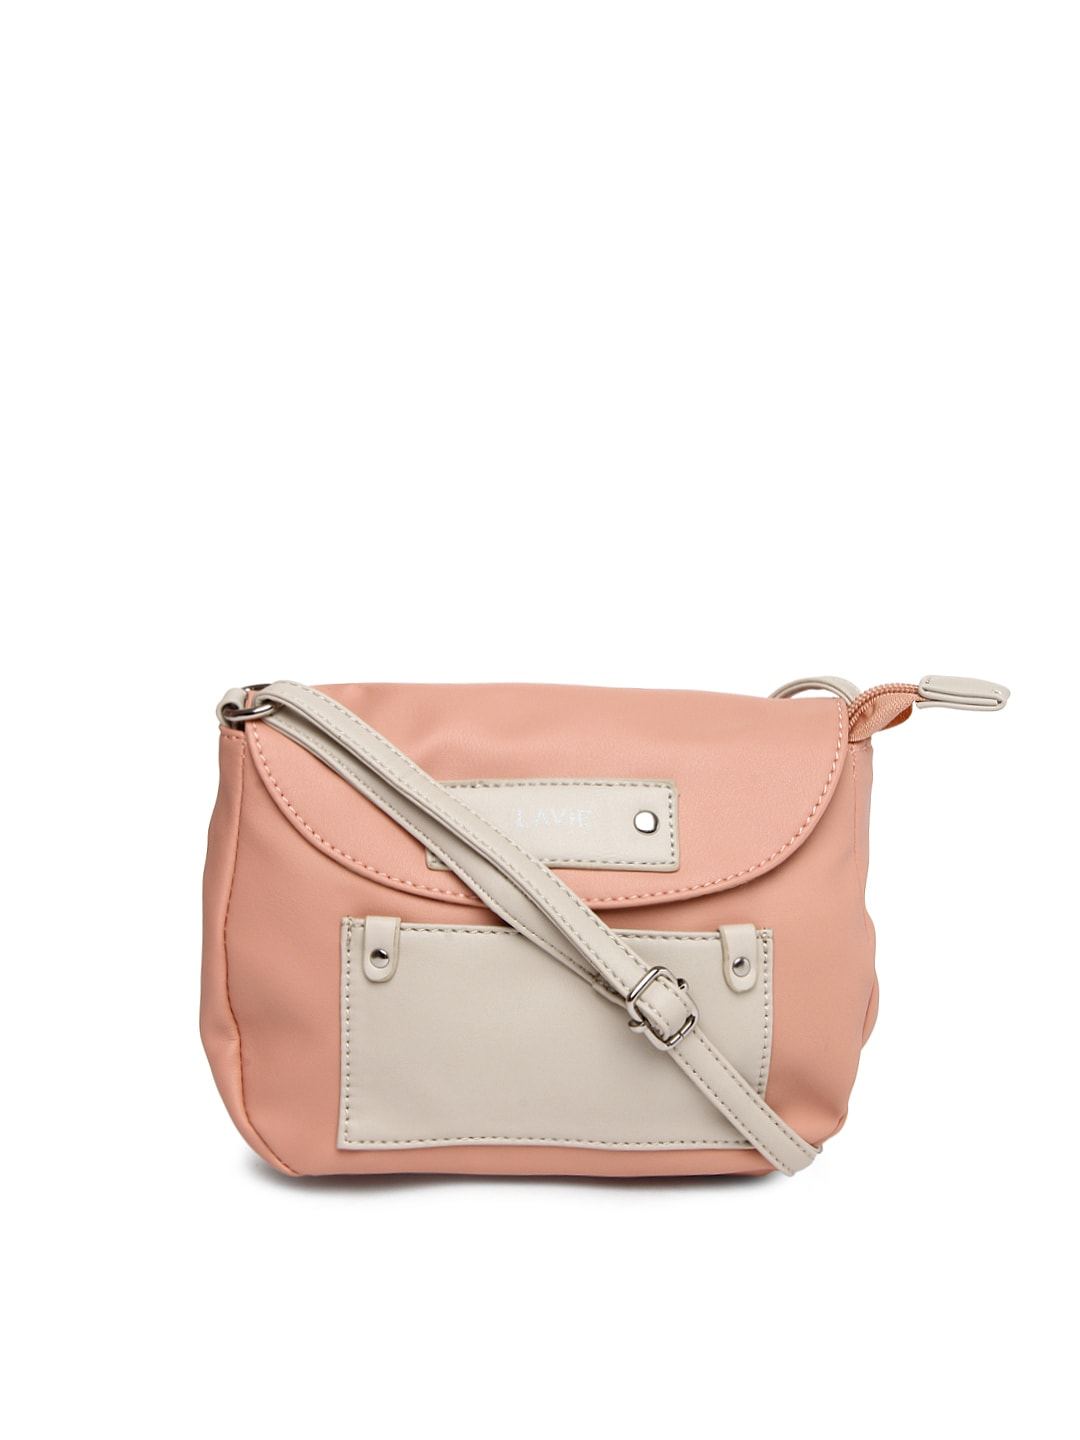 Buy Lavie Cream Coloured Sling Bag - Handbags for Women | Myntra